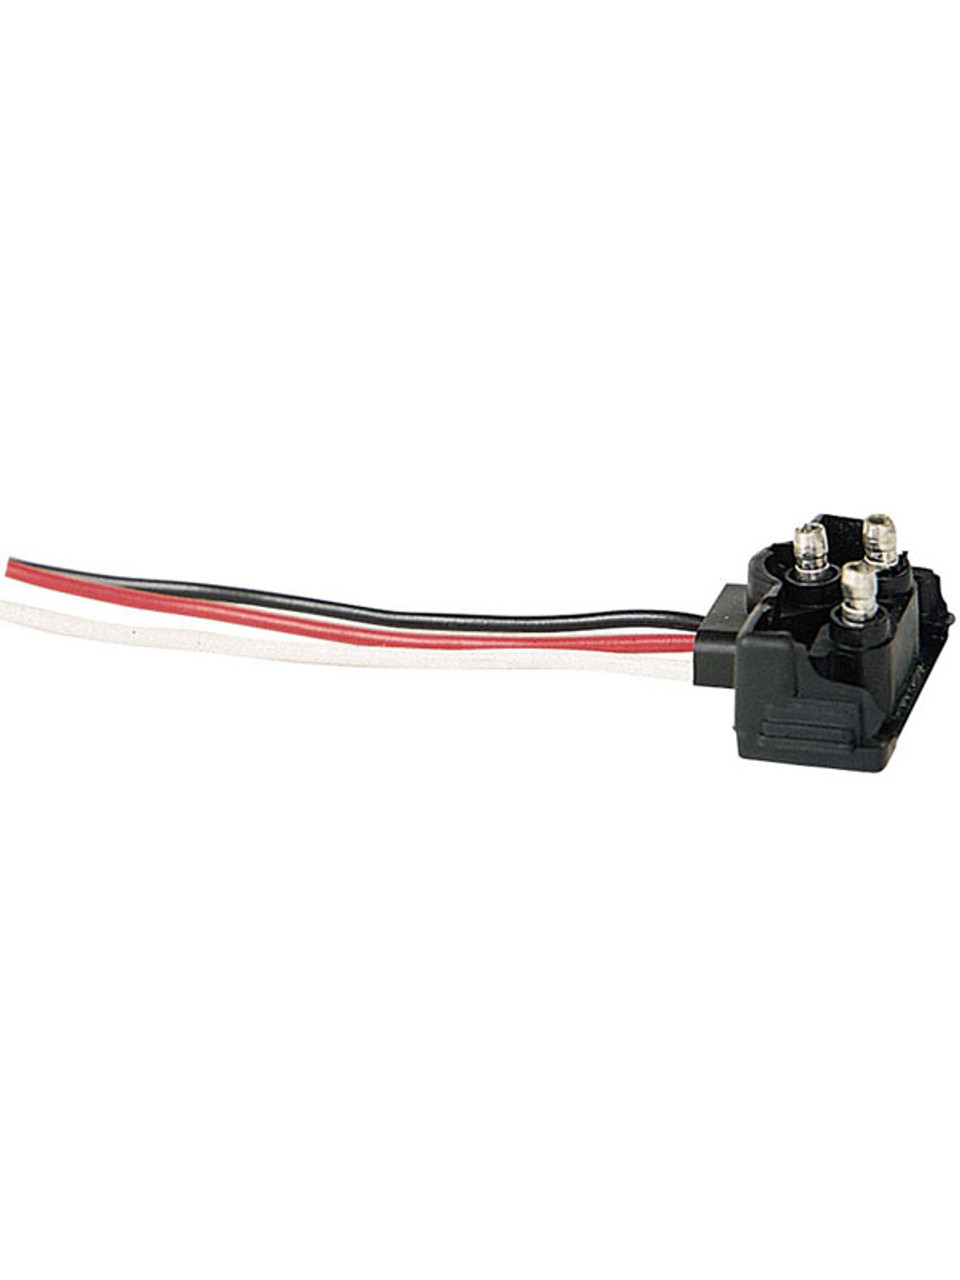 421-491 --- Replacement 3-Wire Right Angle Plug